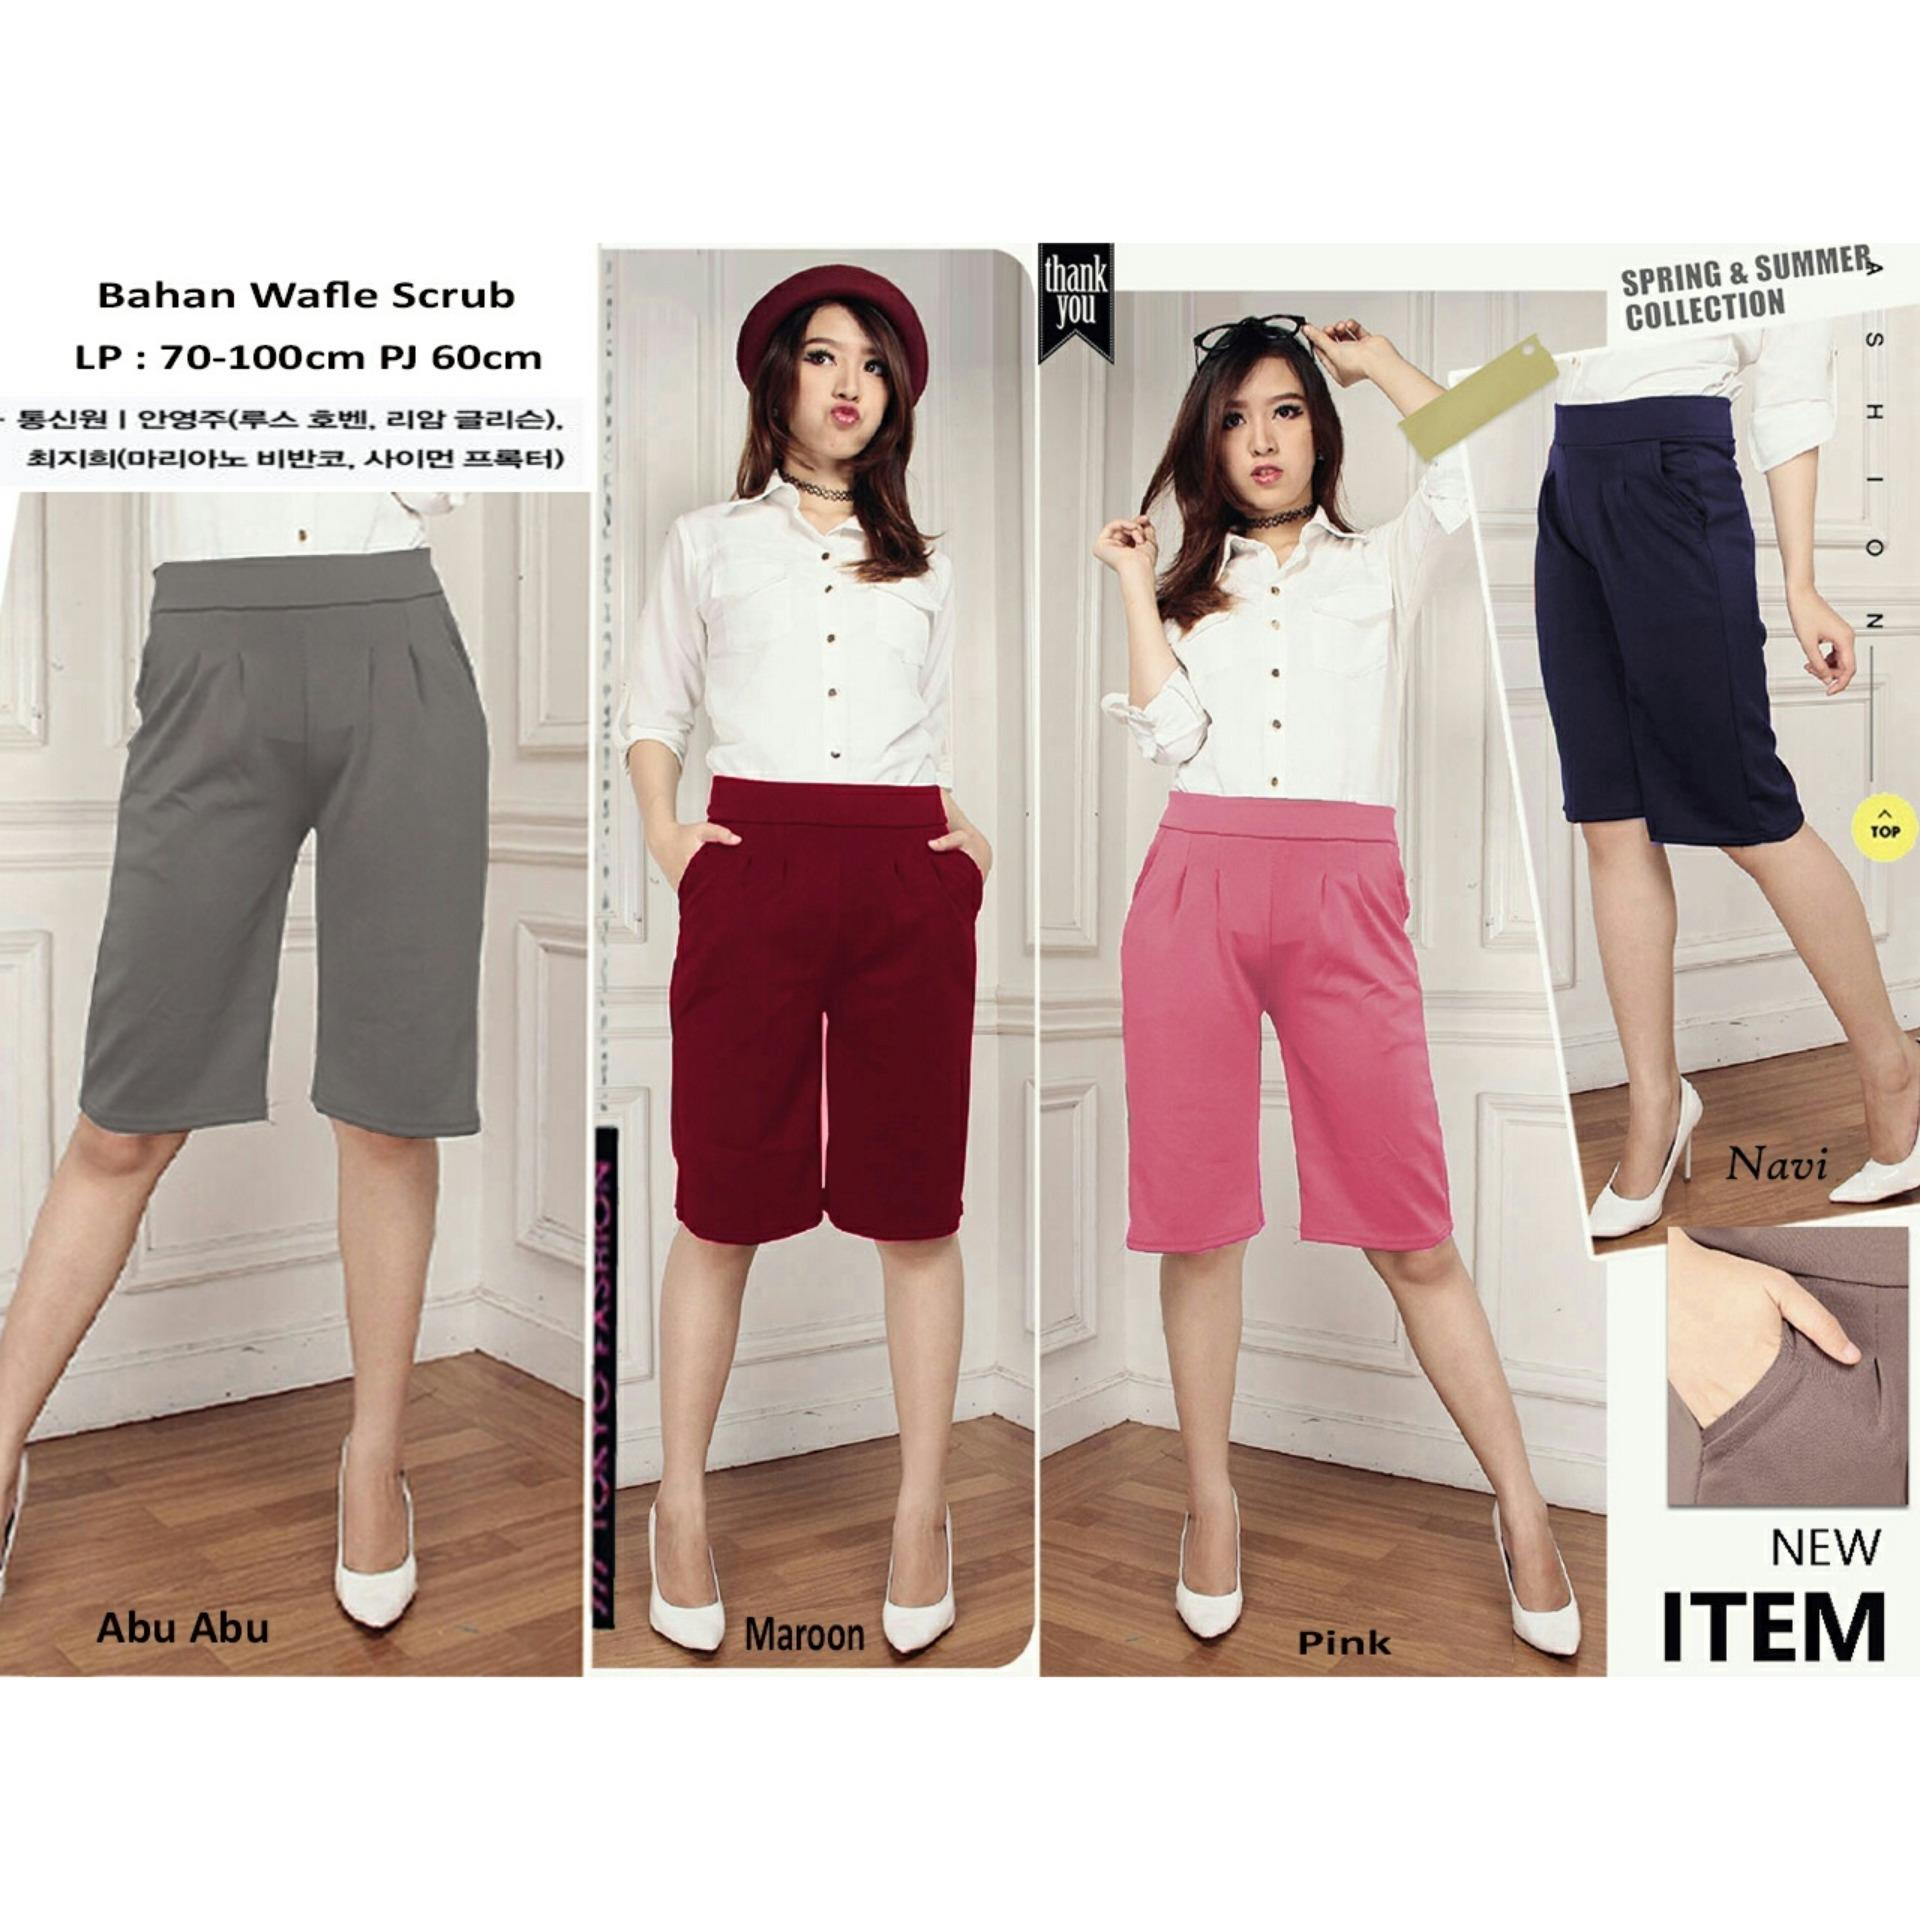 168 Collection Celana Kulot Diara Short Pant-Abu ส่วนลด -52% ผู้ขาย Ach